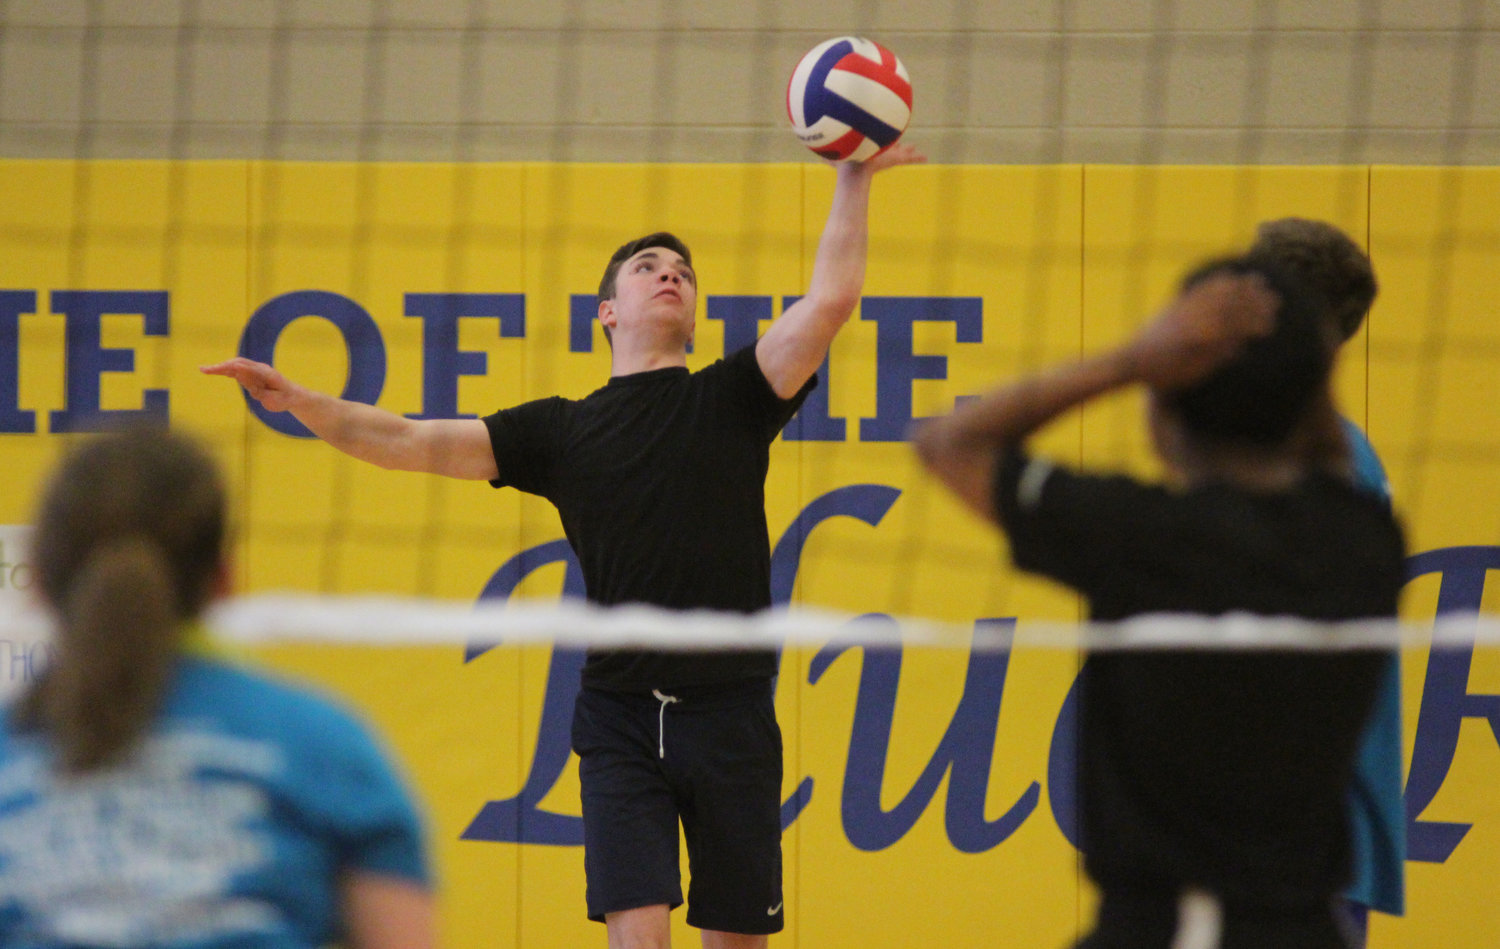 Jessie Van Eik plays volleyball at Middletown Area High School's Mini-THON on May 3.